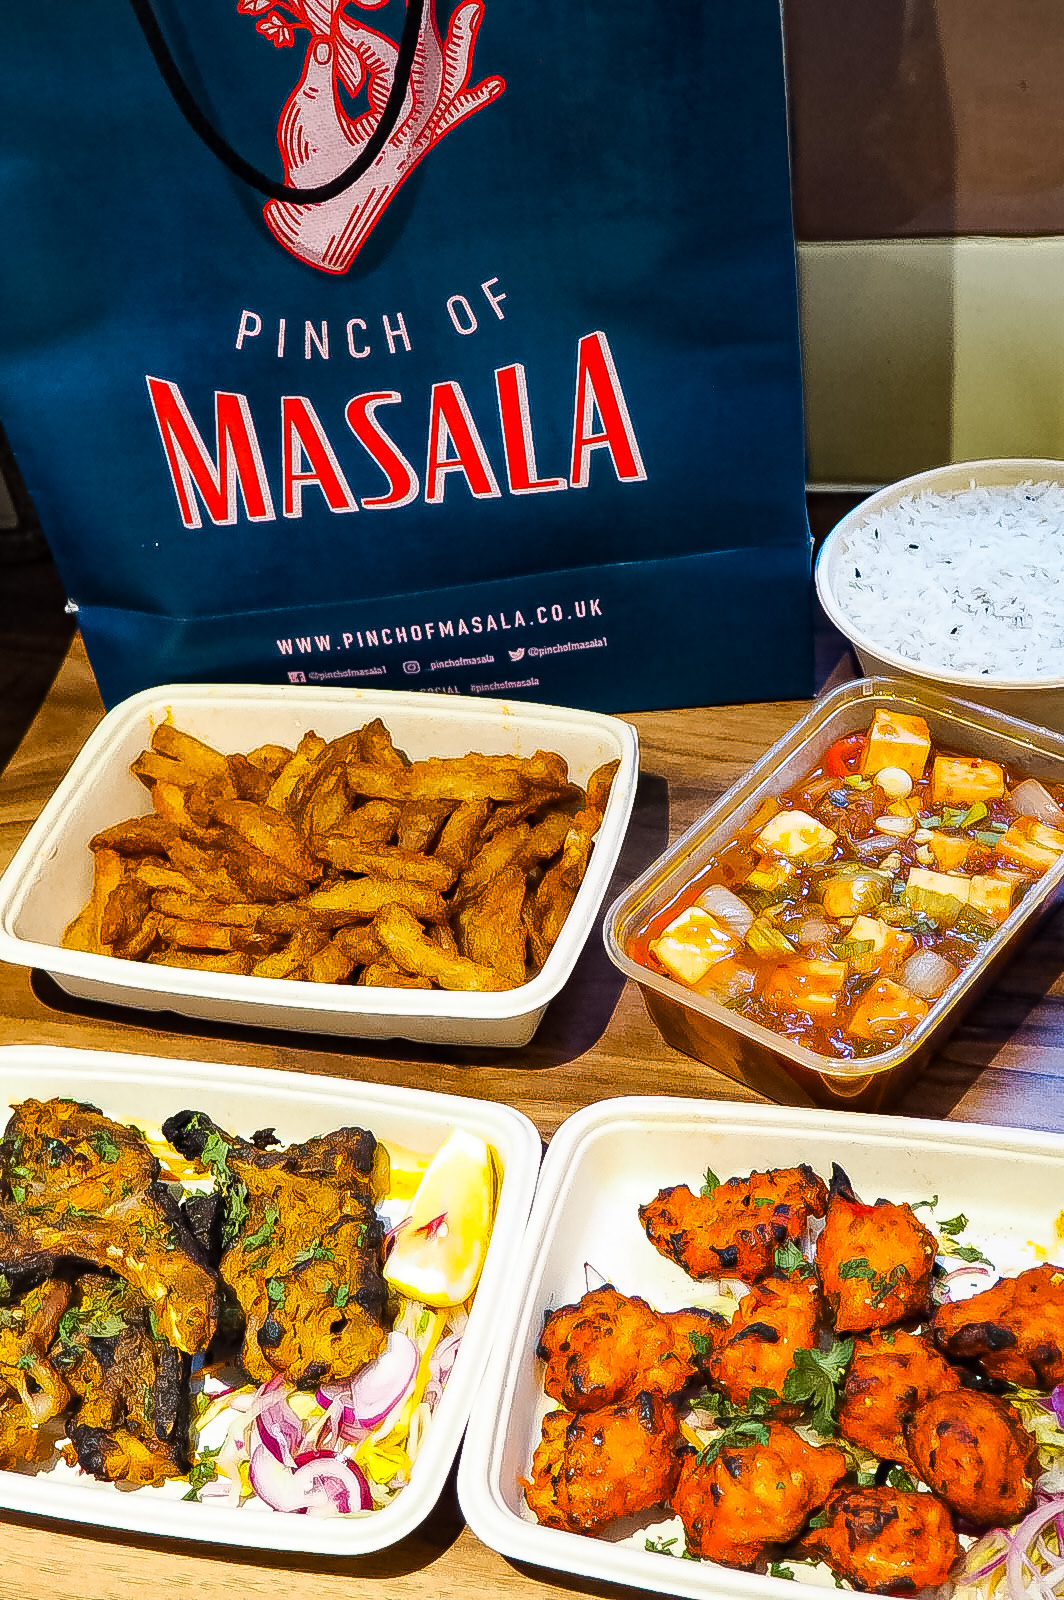 Pinch of Masala Bag and Food